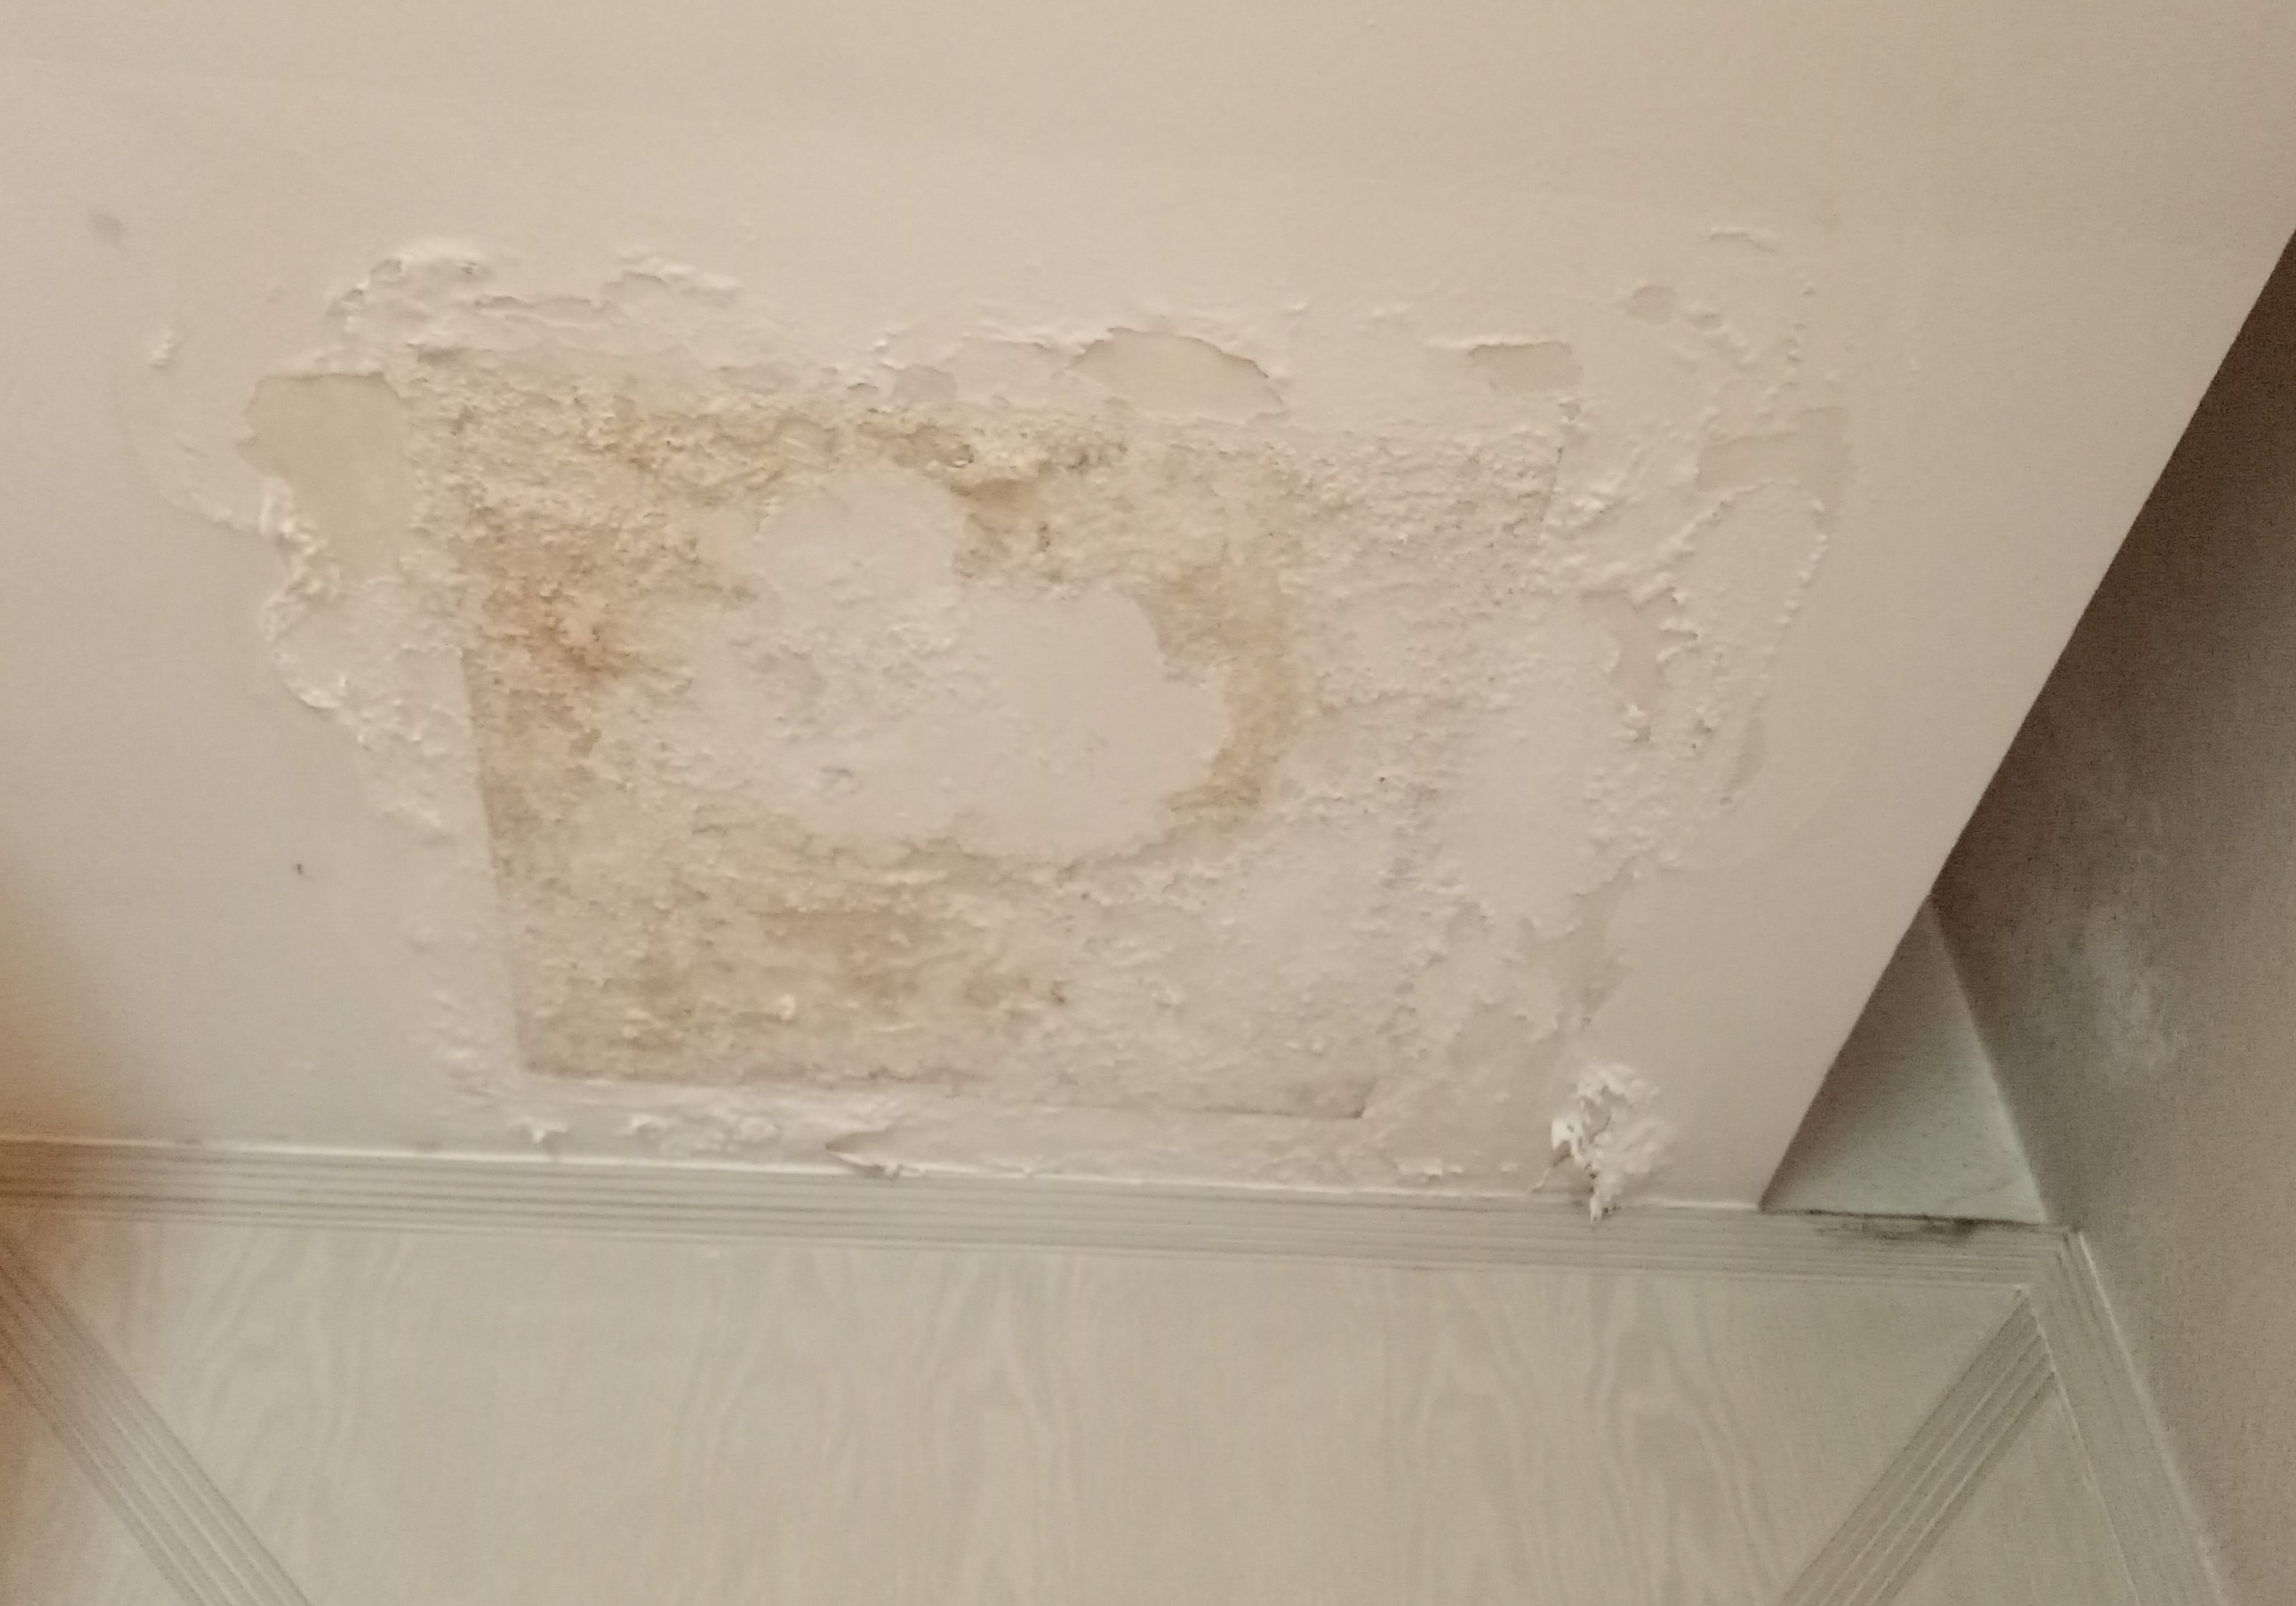 water seepage treatment singapore  renovation contractor singapore